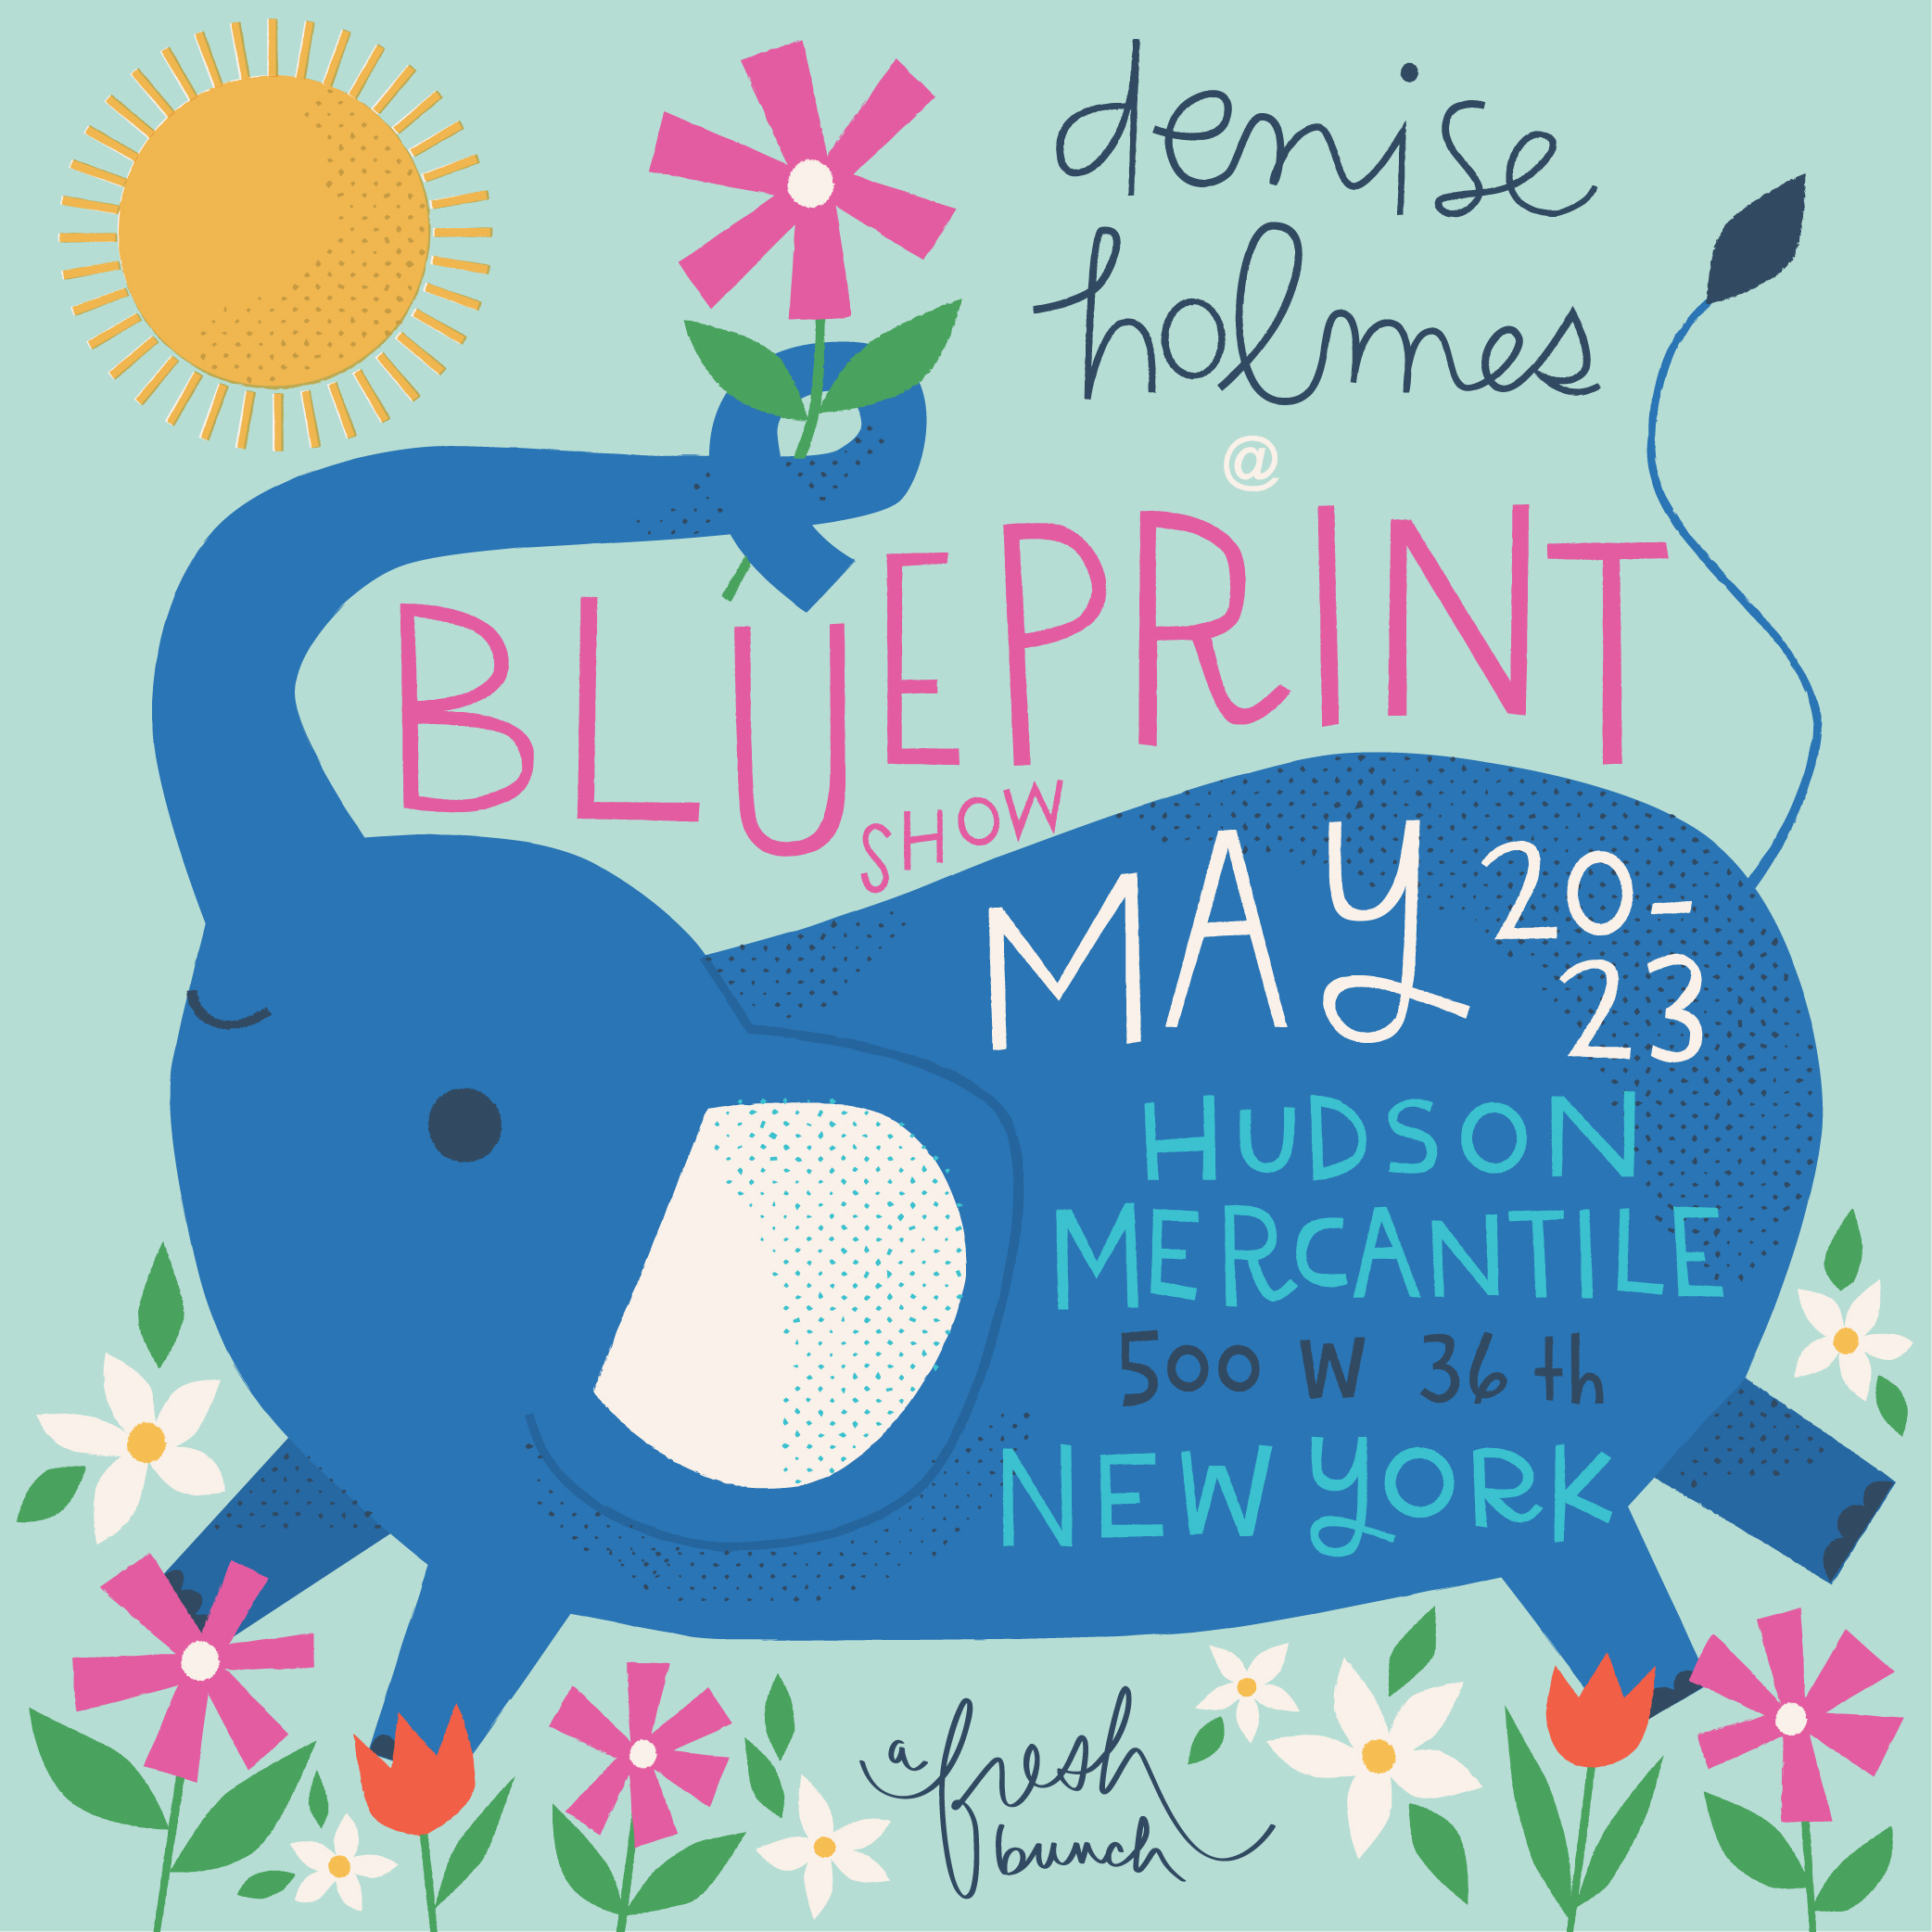 dh_blueprint_2019